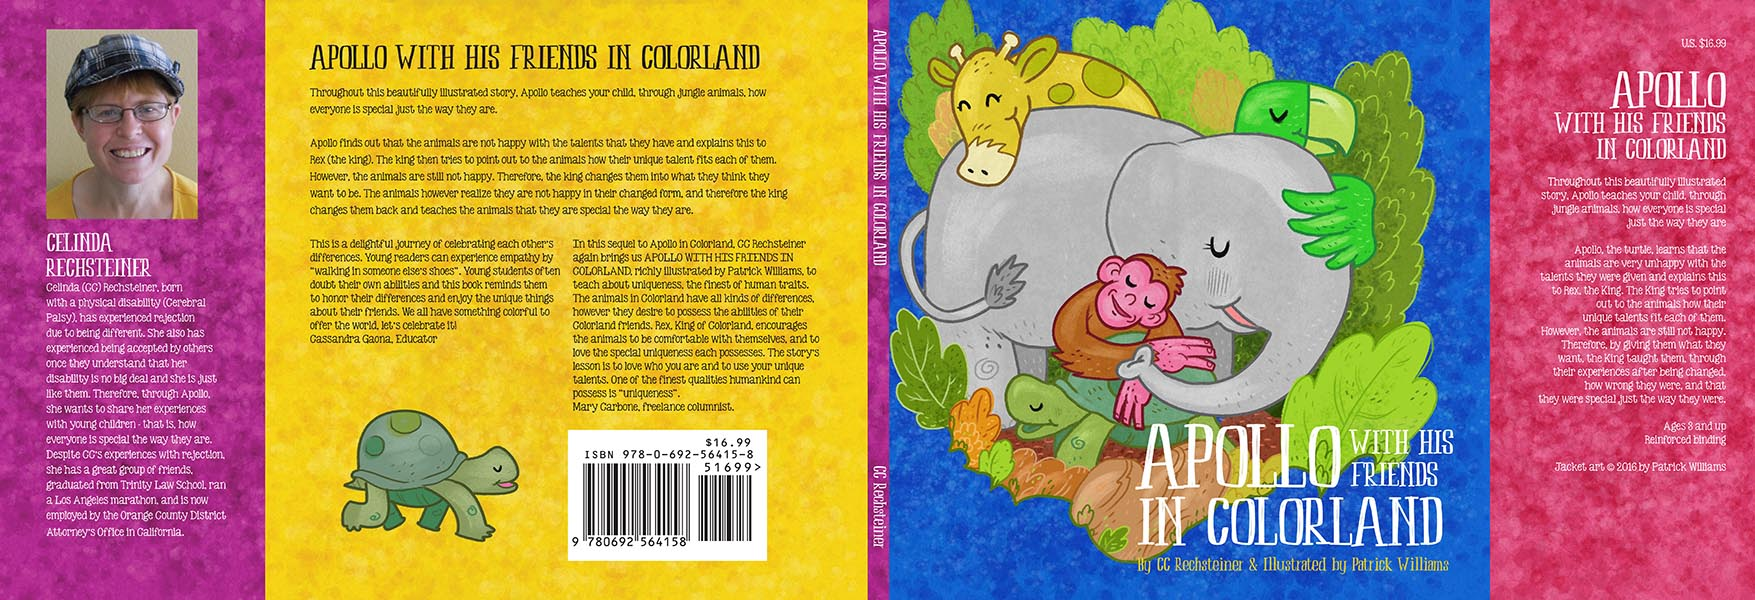 Apollo and His Friends in Colorland dust jacket